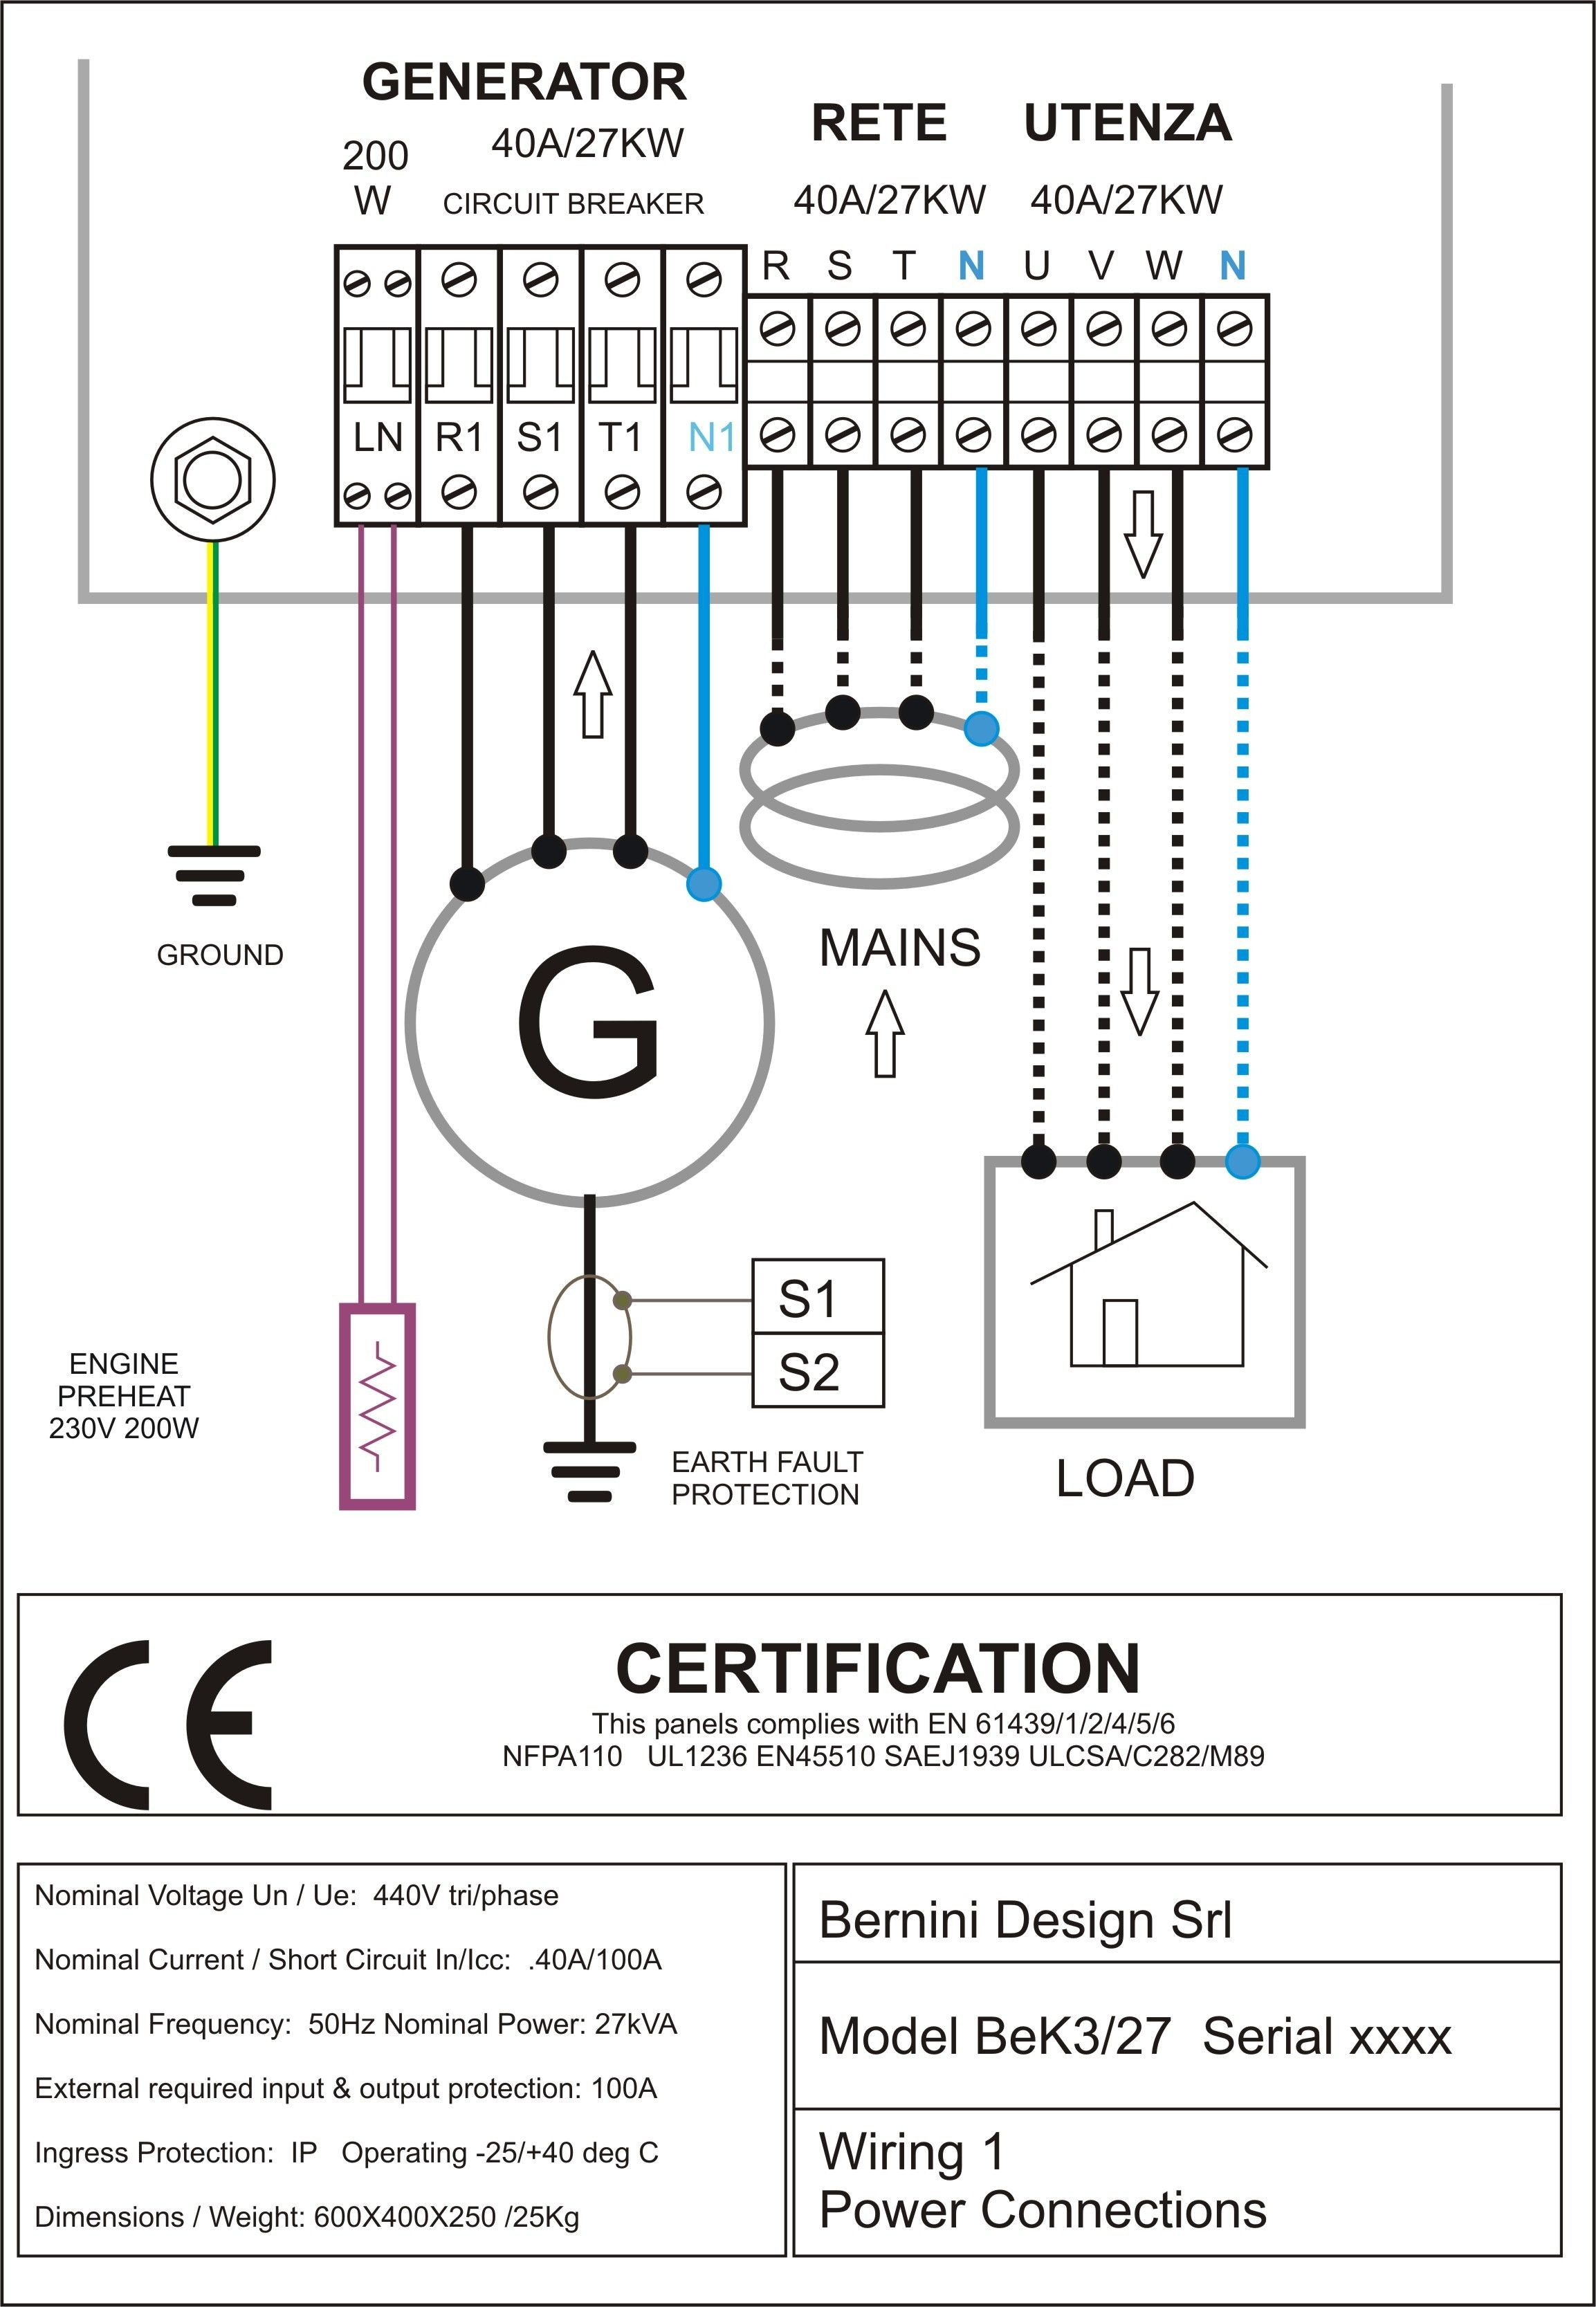 Schematic Diagram Of Diesel Engine Sel Generator Control Panel Wiring Diagram Ac Connections Of Schematic Diagram Of Diesel Engine